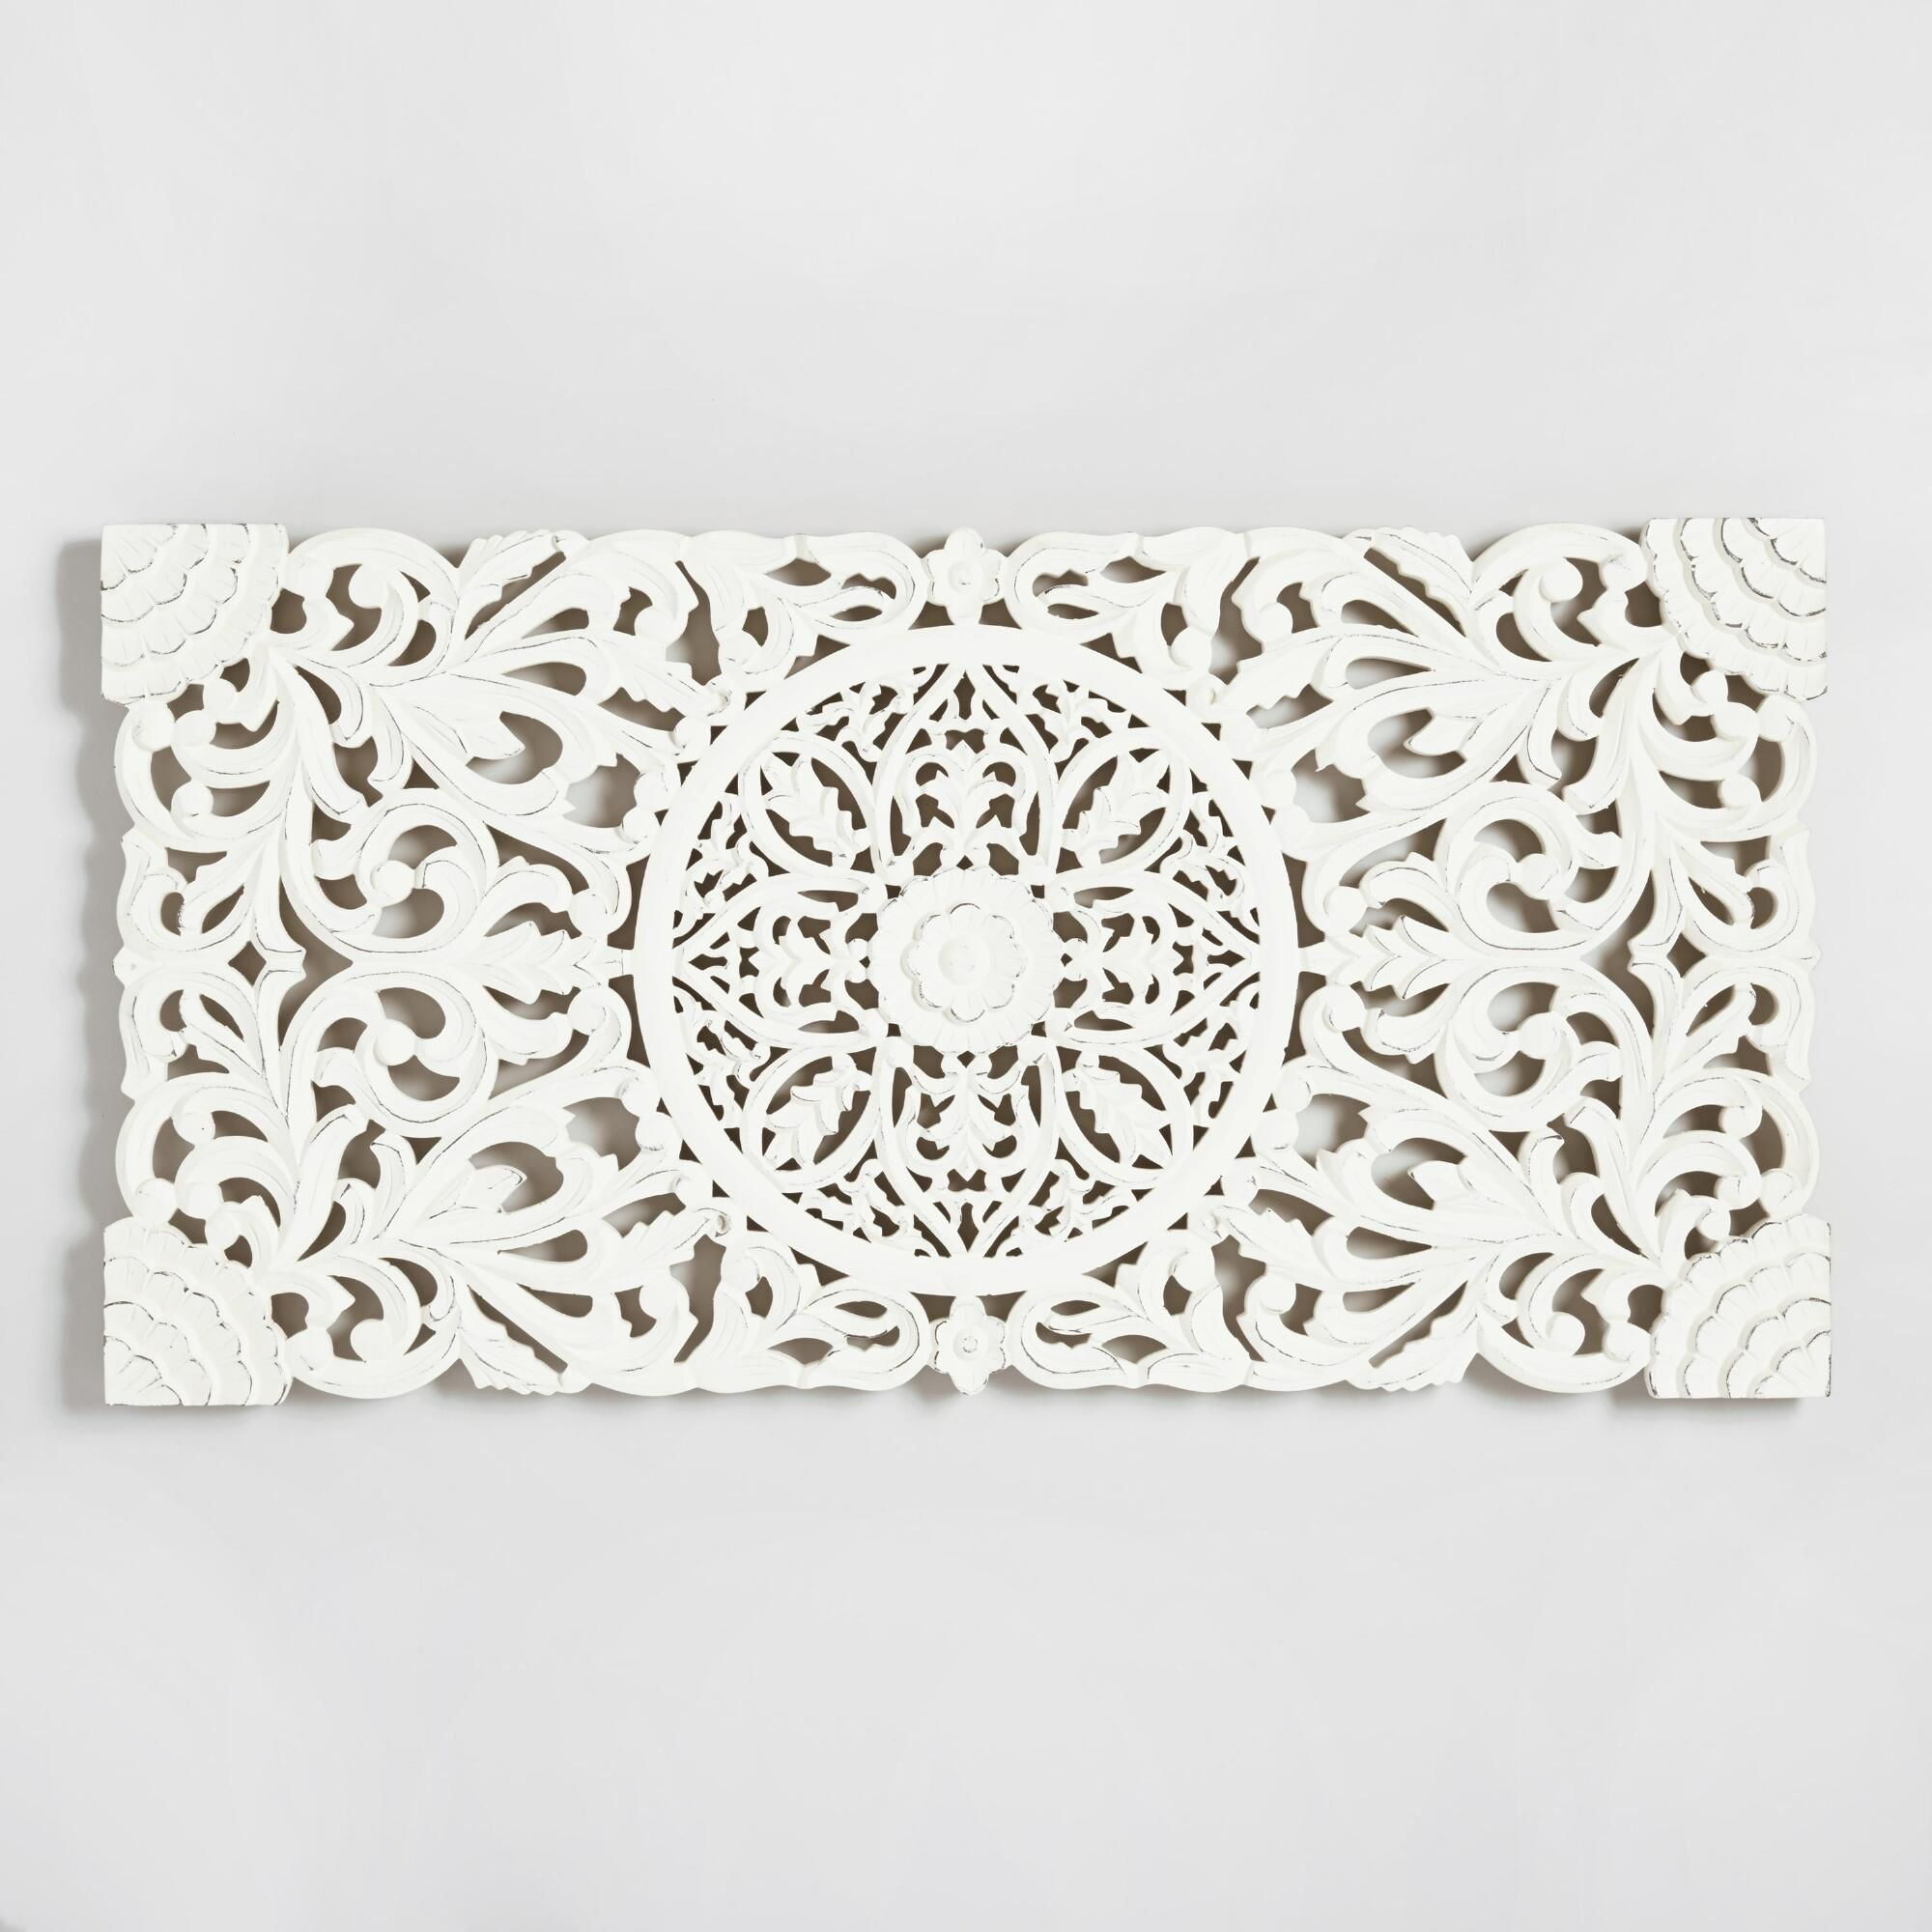 Ivory Wood Floral Wall Panel White By World Market Wall Decor Bedroom Bedroom Wall Decor Above Bed Floral Wall